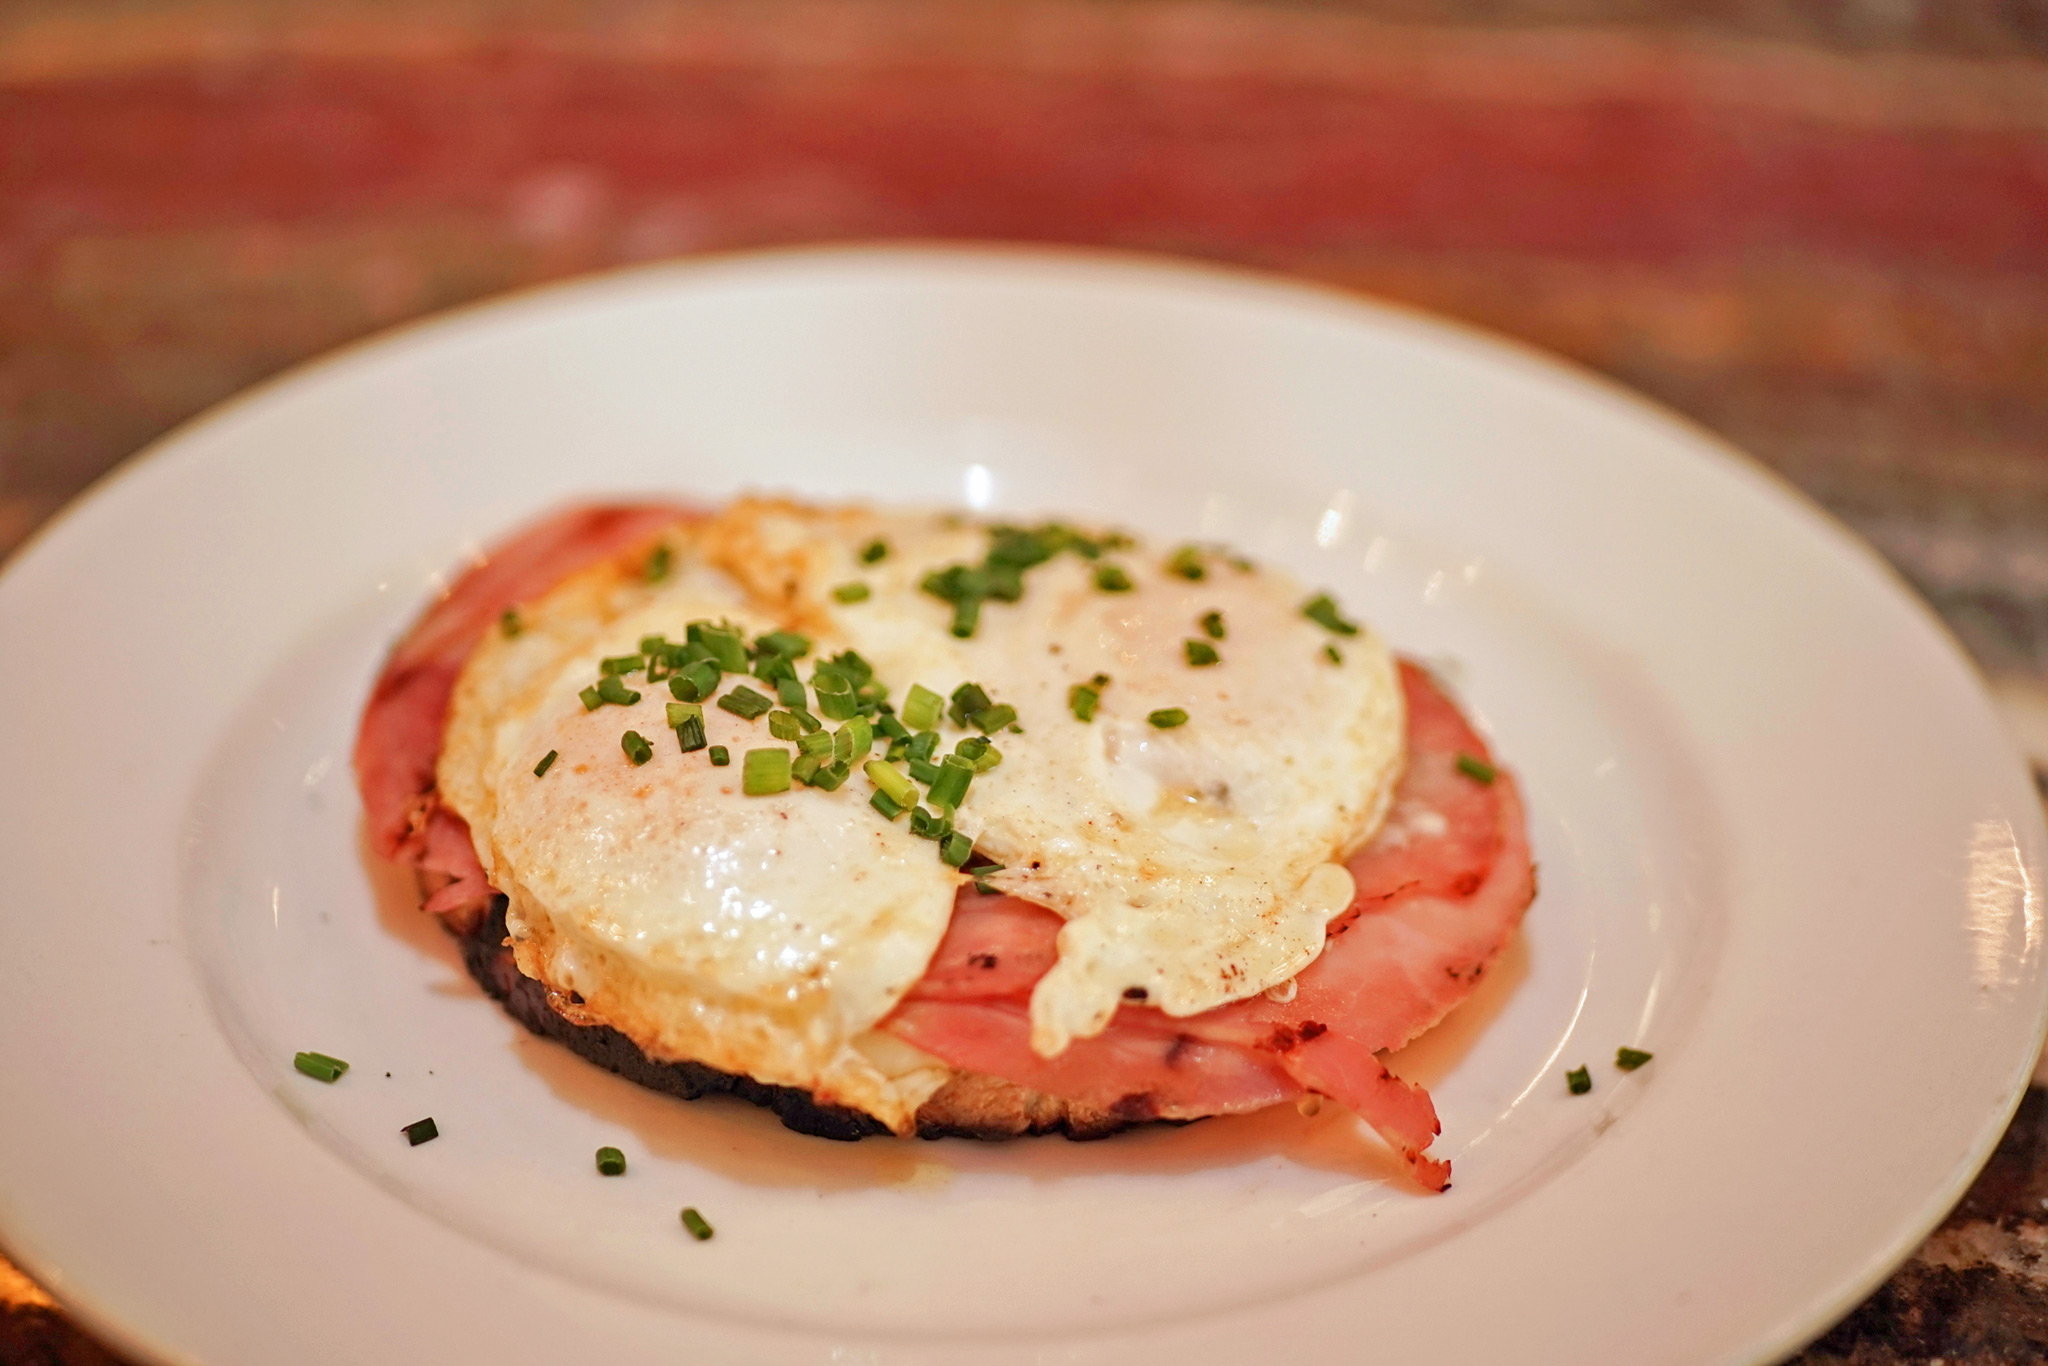 Croque Madame – open-faced sandwich on grilled sourdough with ham de paris, comté cheese béchamel sauce and two over-easy eggs